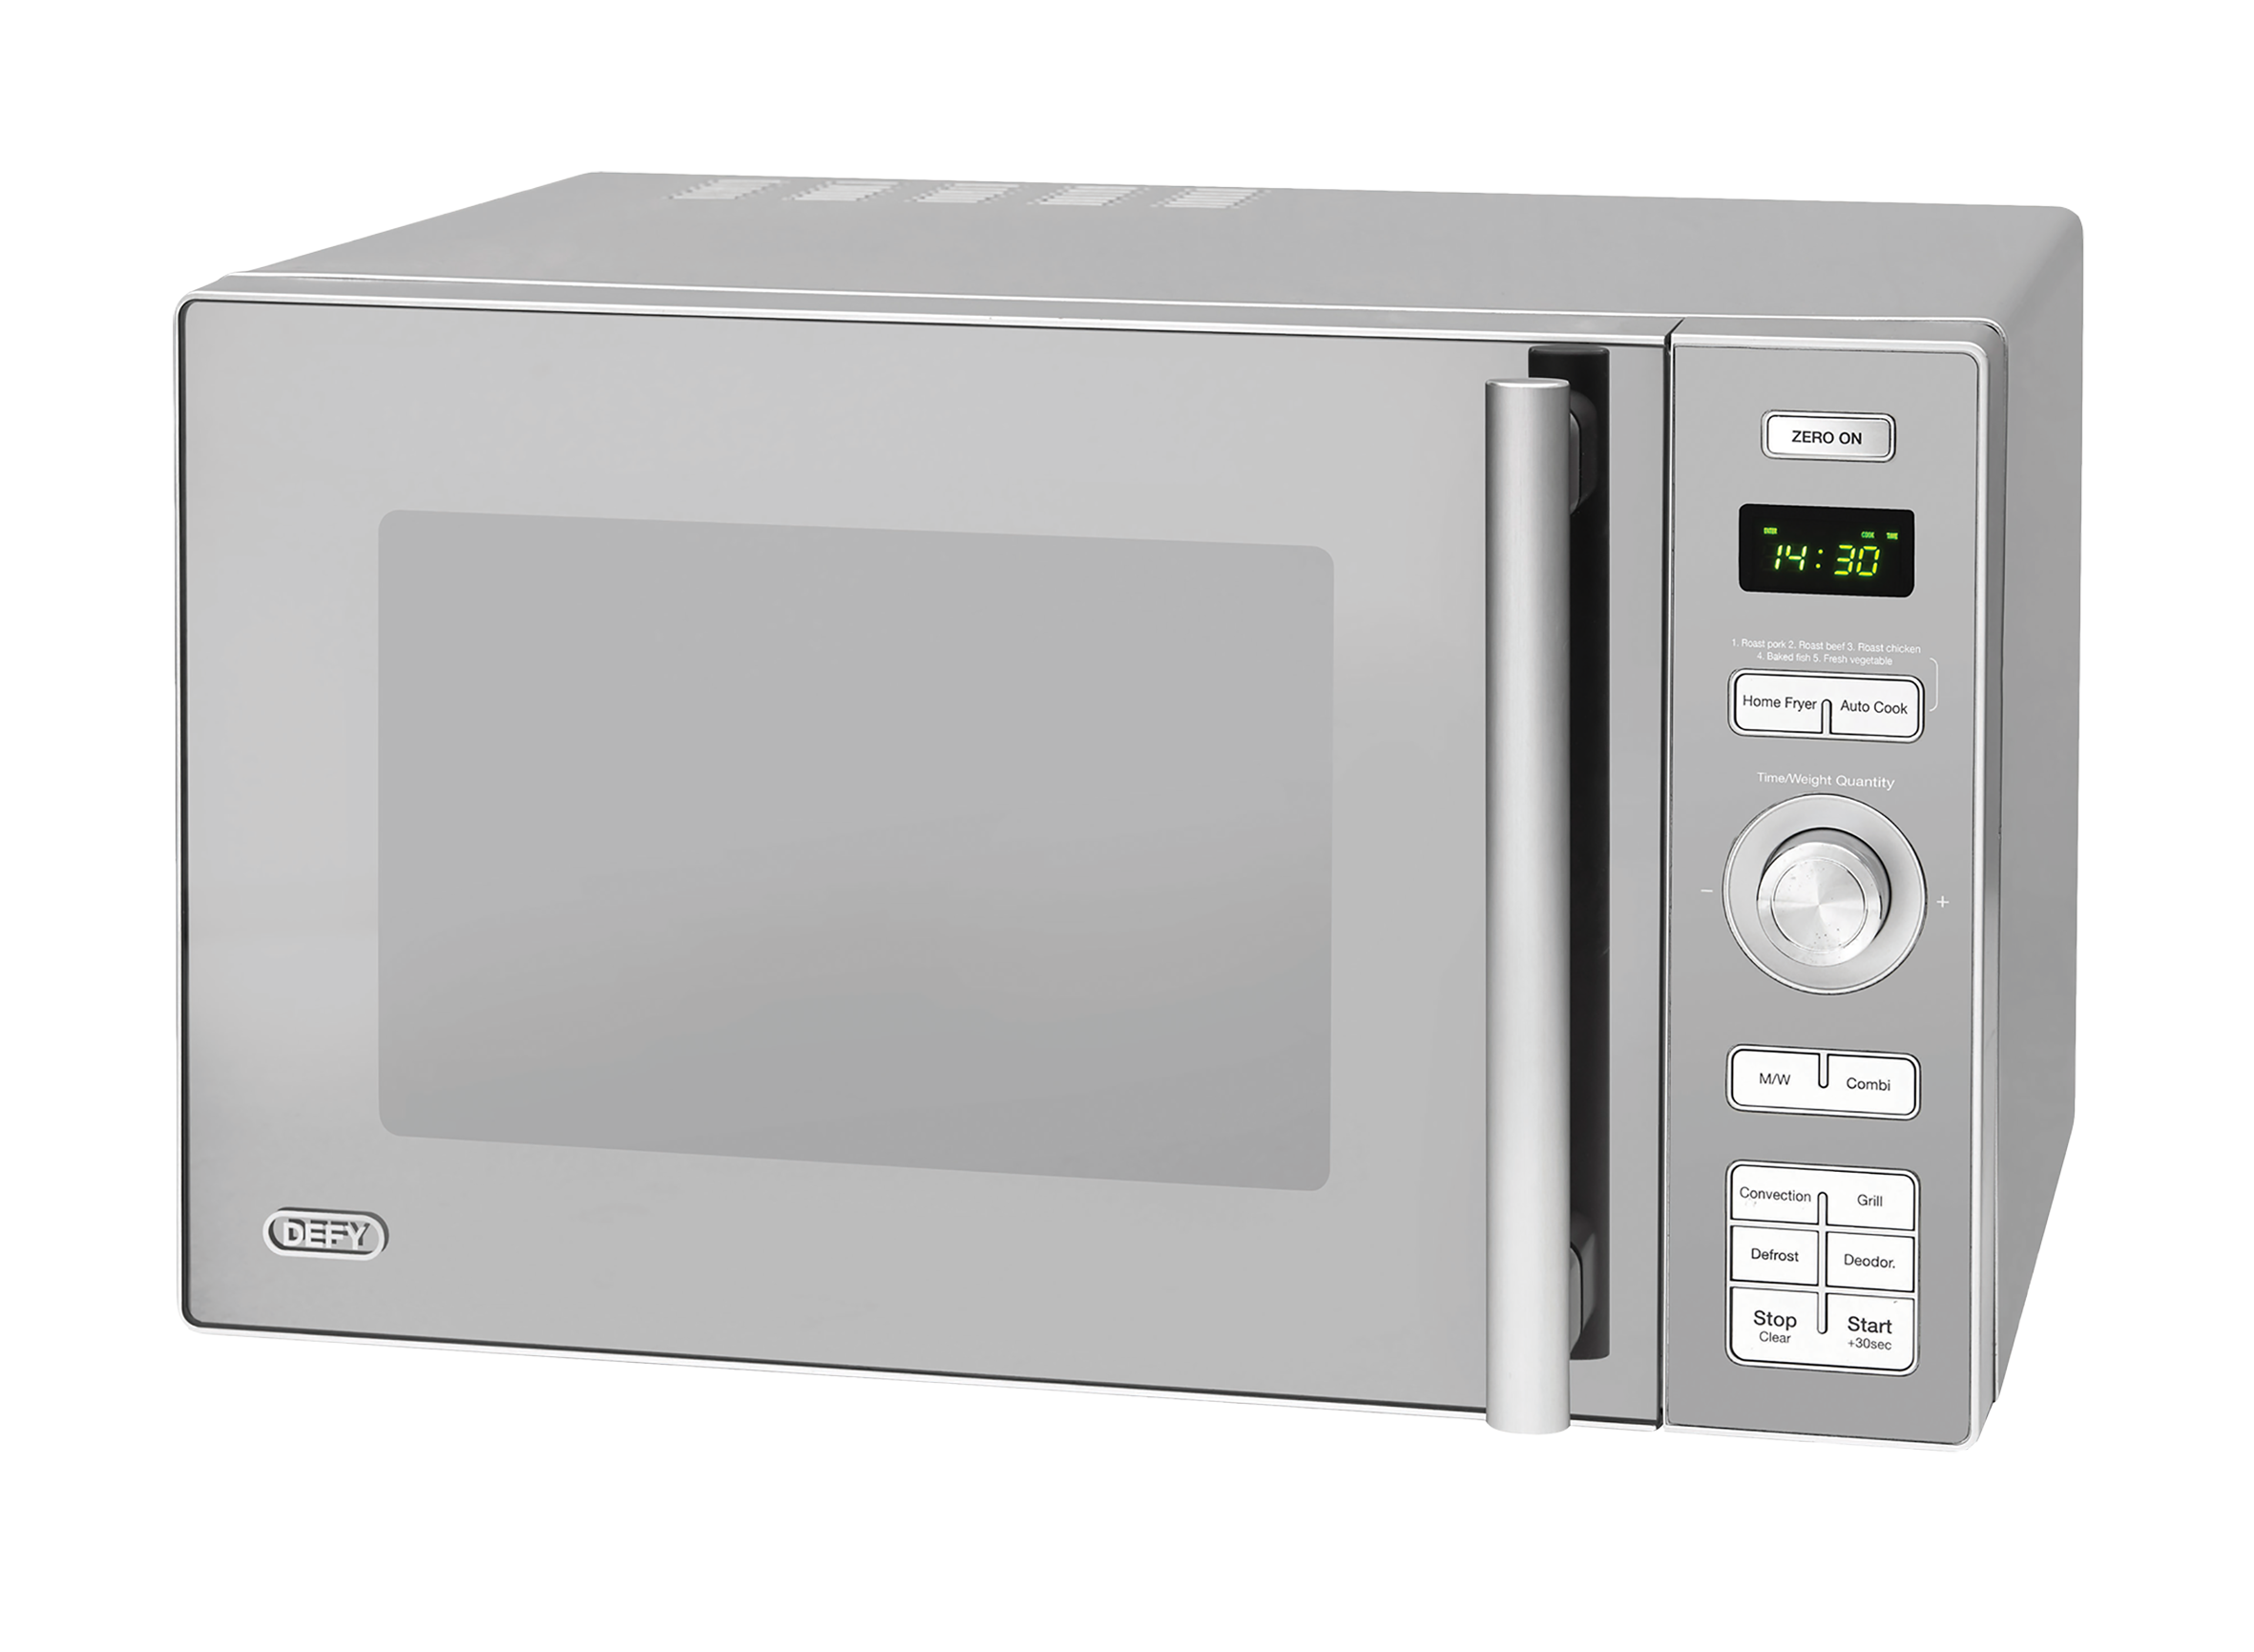 Convection Microwave Grill Bestmicrowave